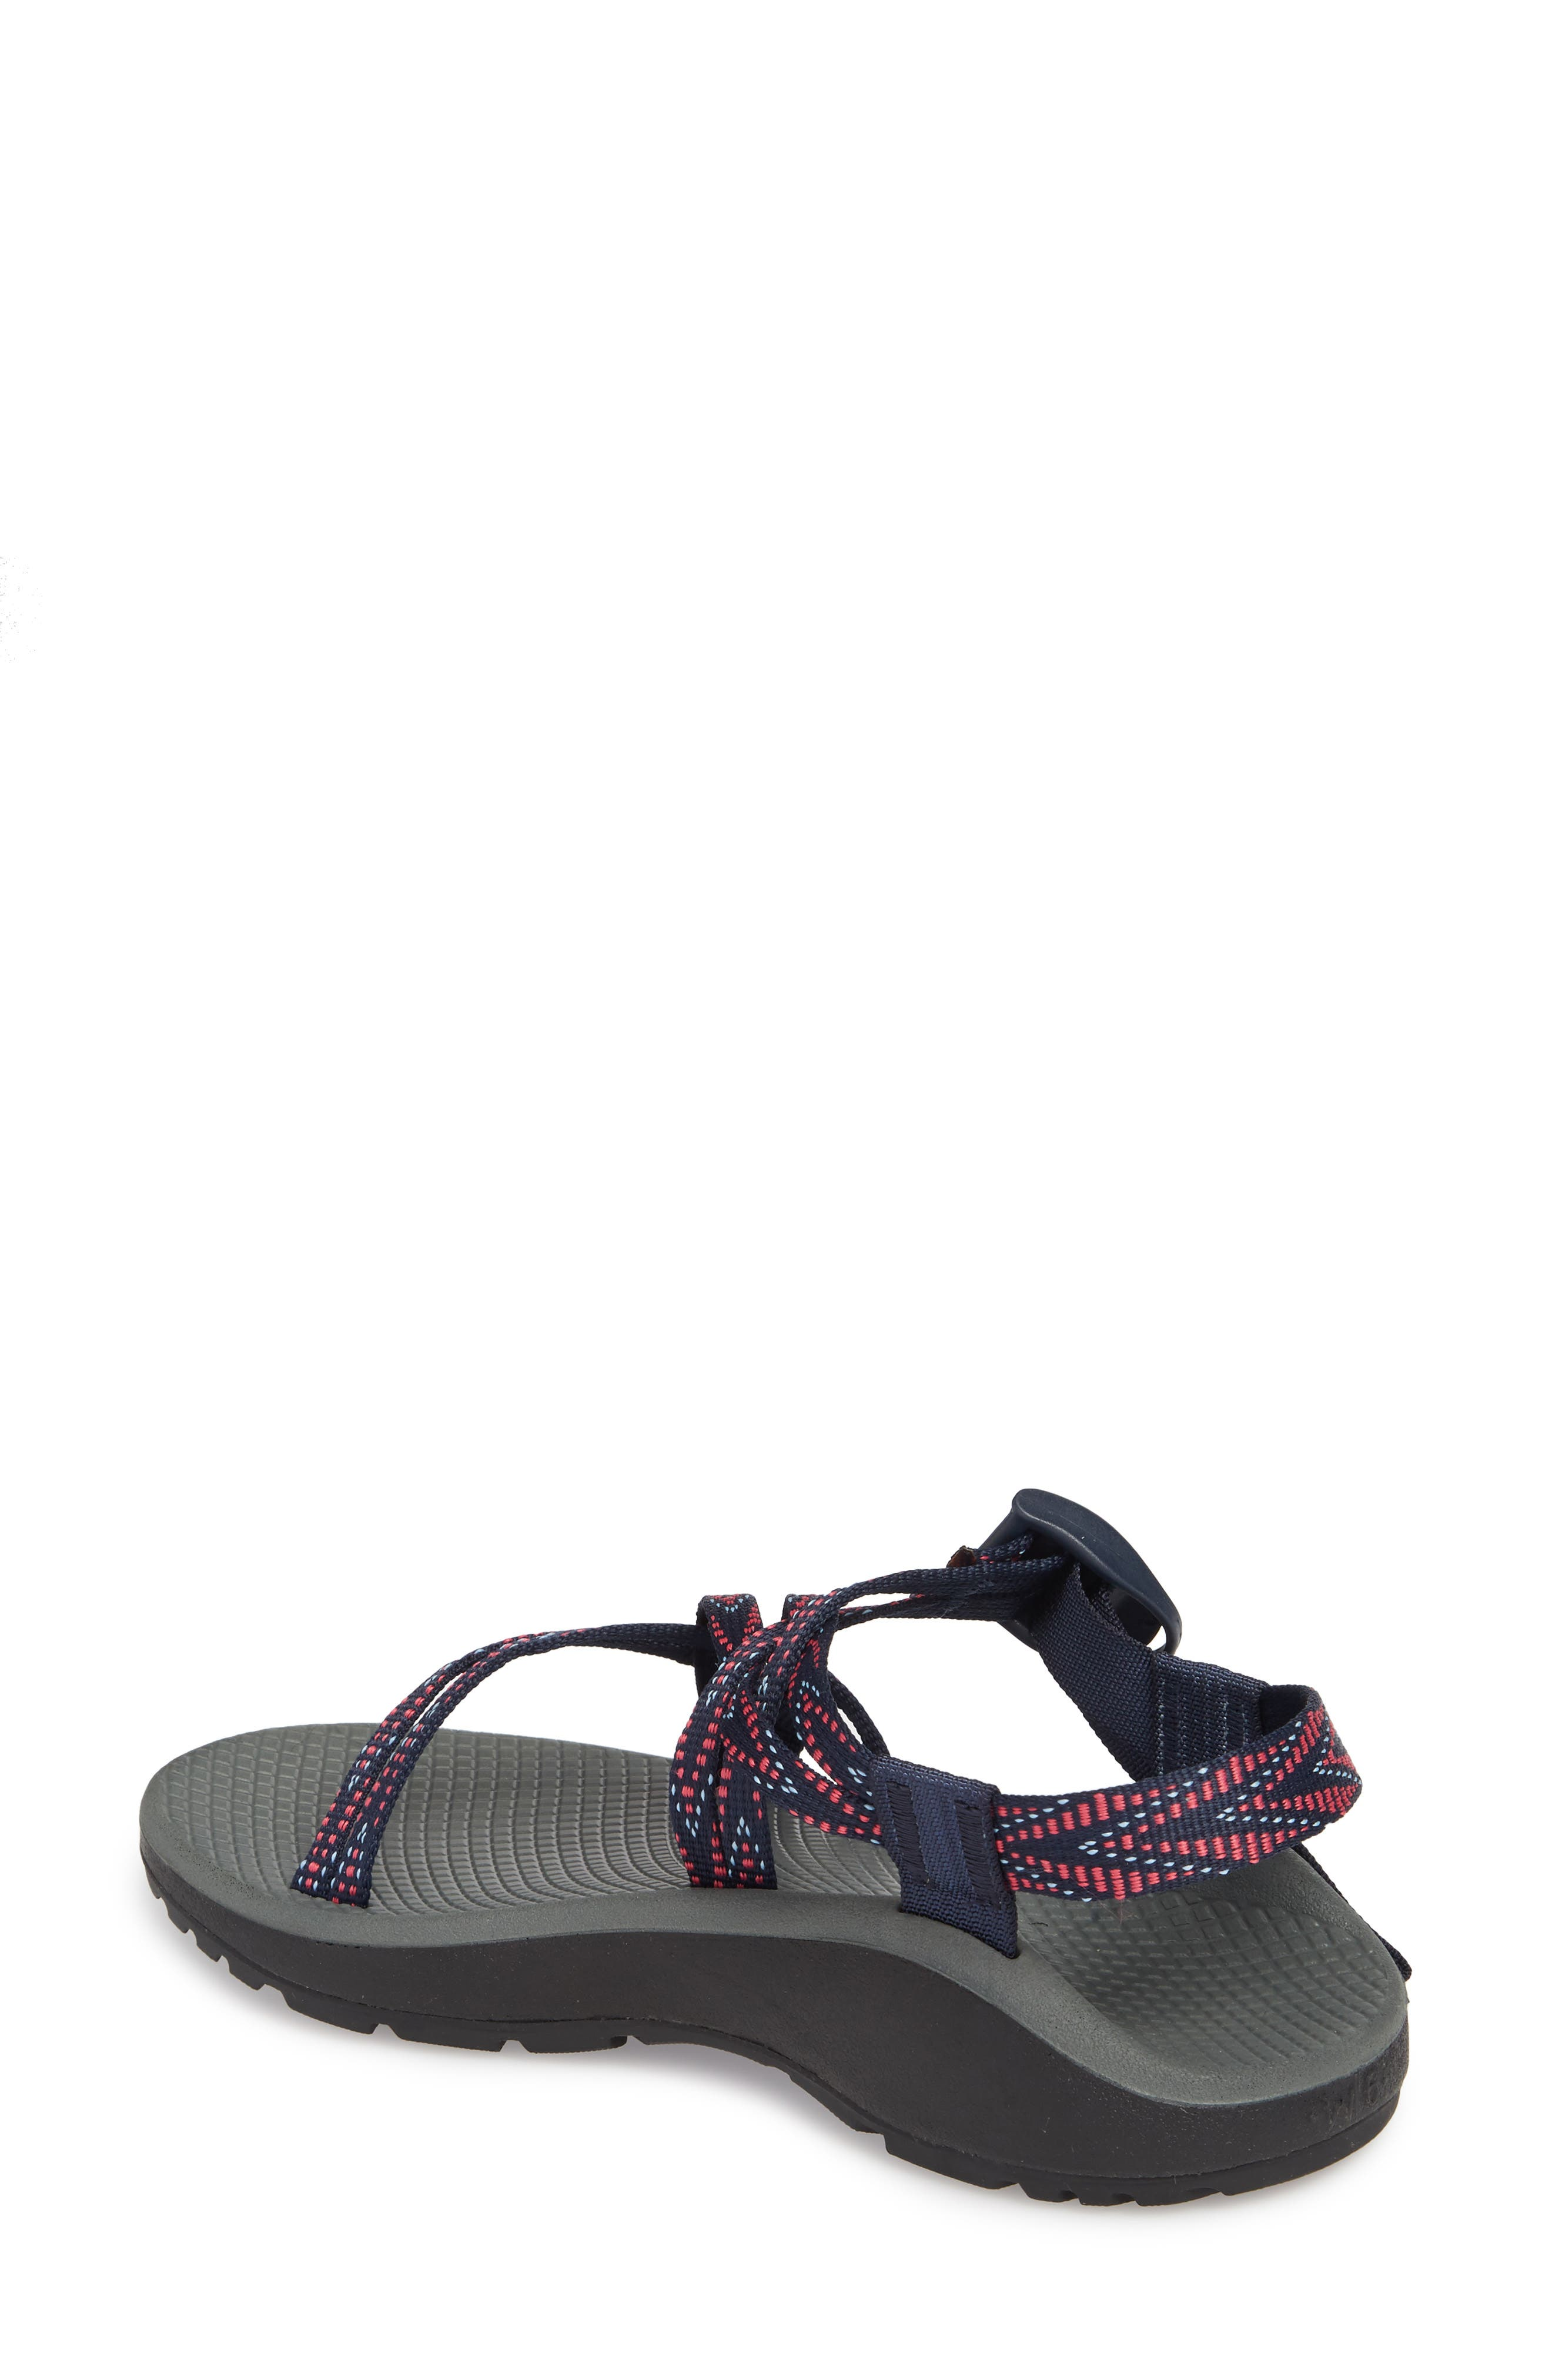 Alternate Image 2  - Chaco Z/Cloud X Sport Sandal (Women)